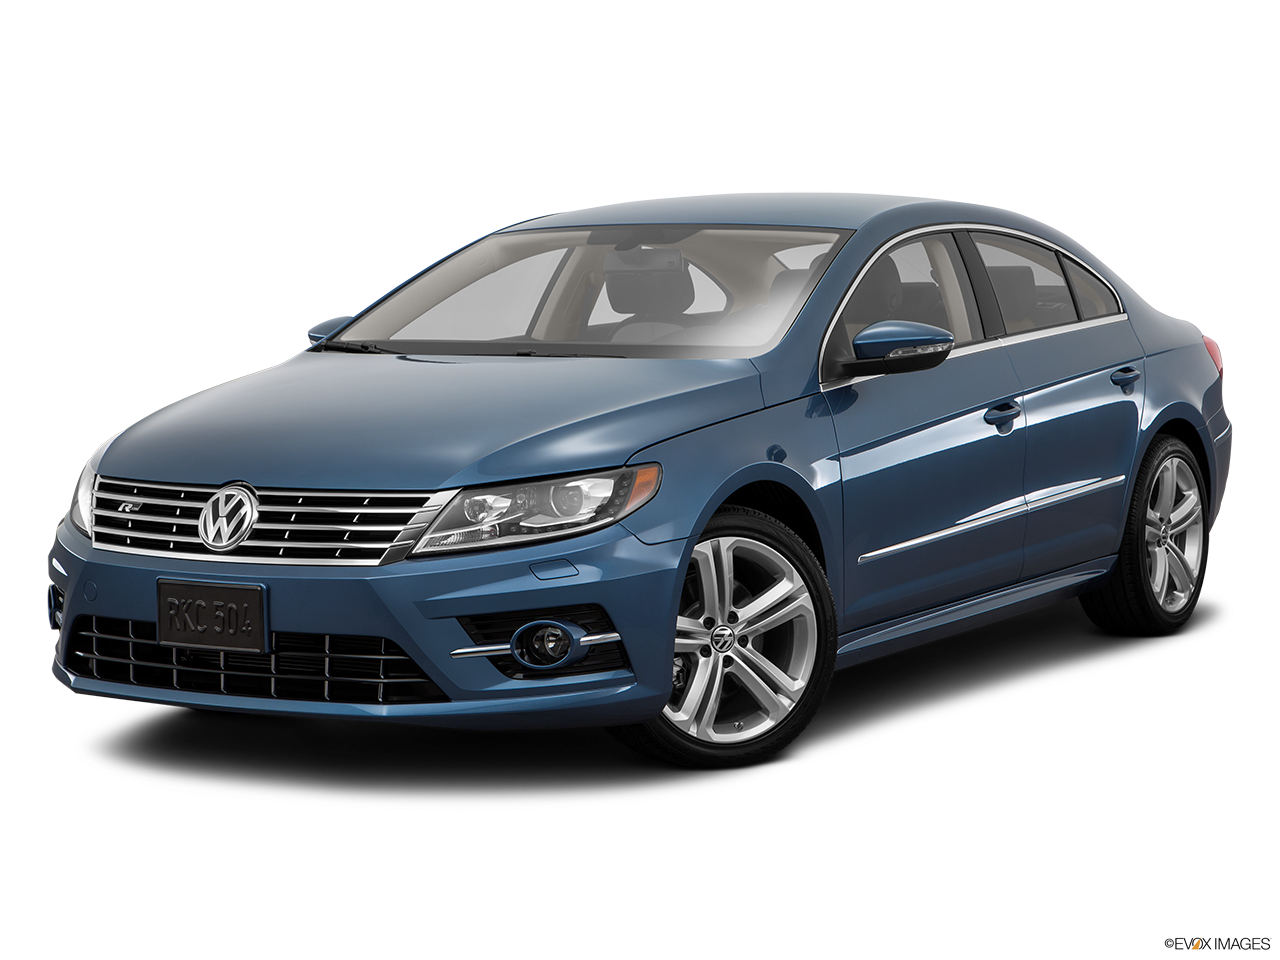 Test Drive A 2016 Volkswagen CC at Casey Volkswagen in Newport News